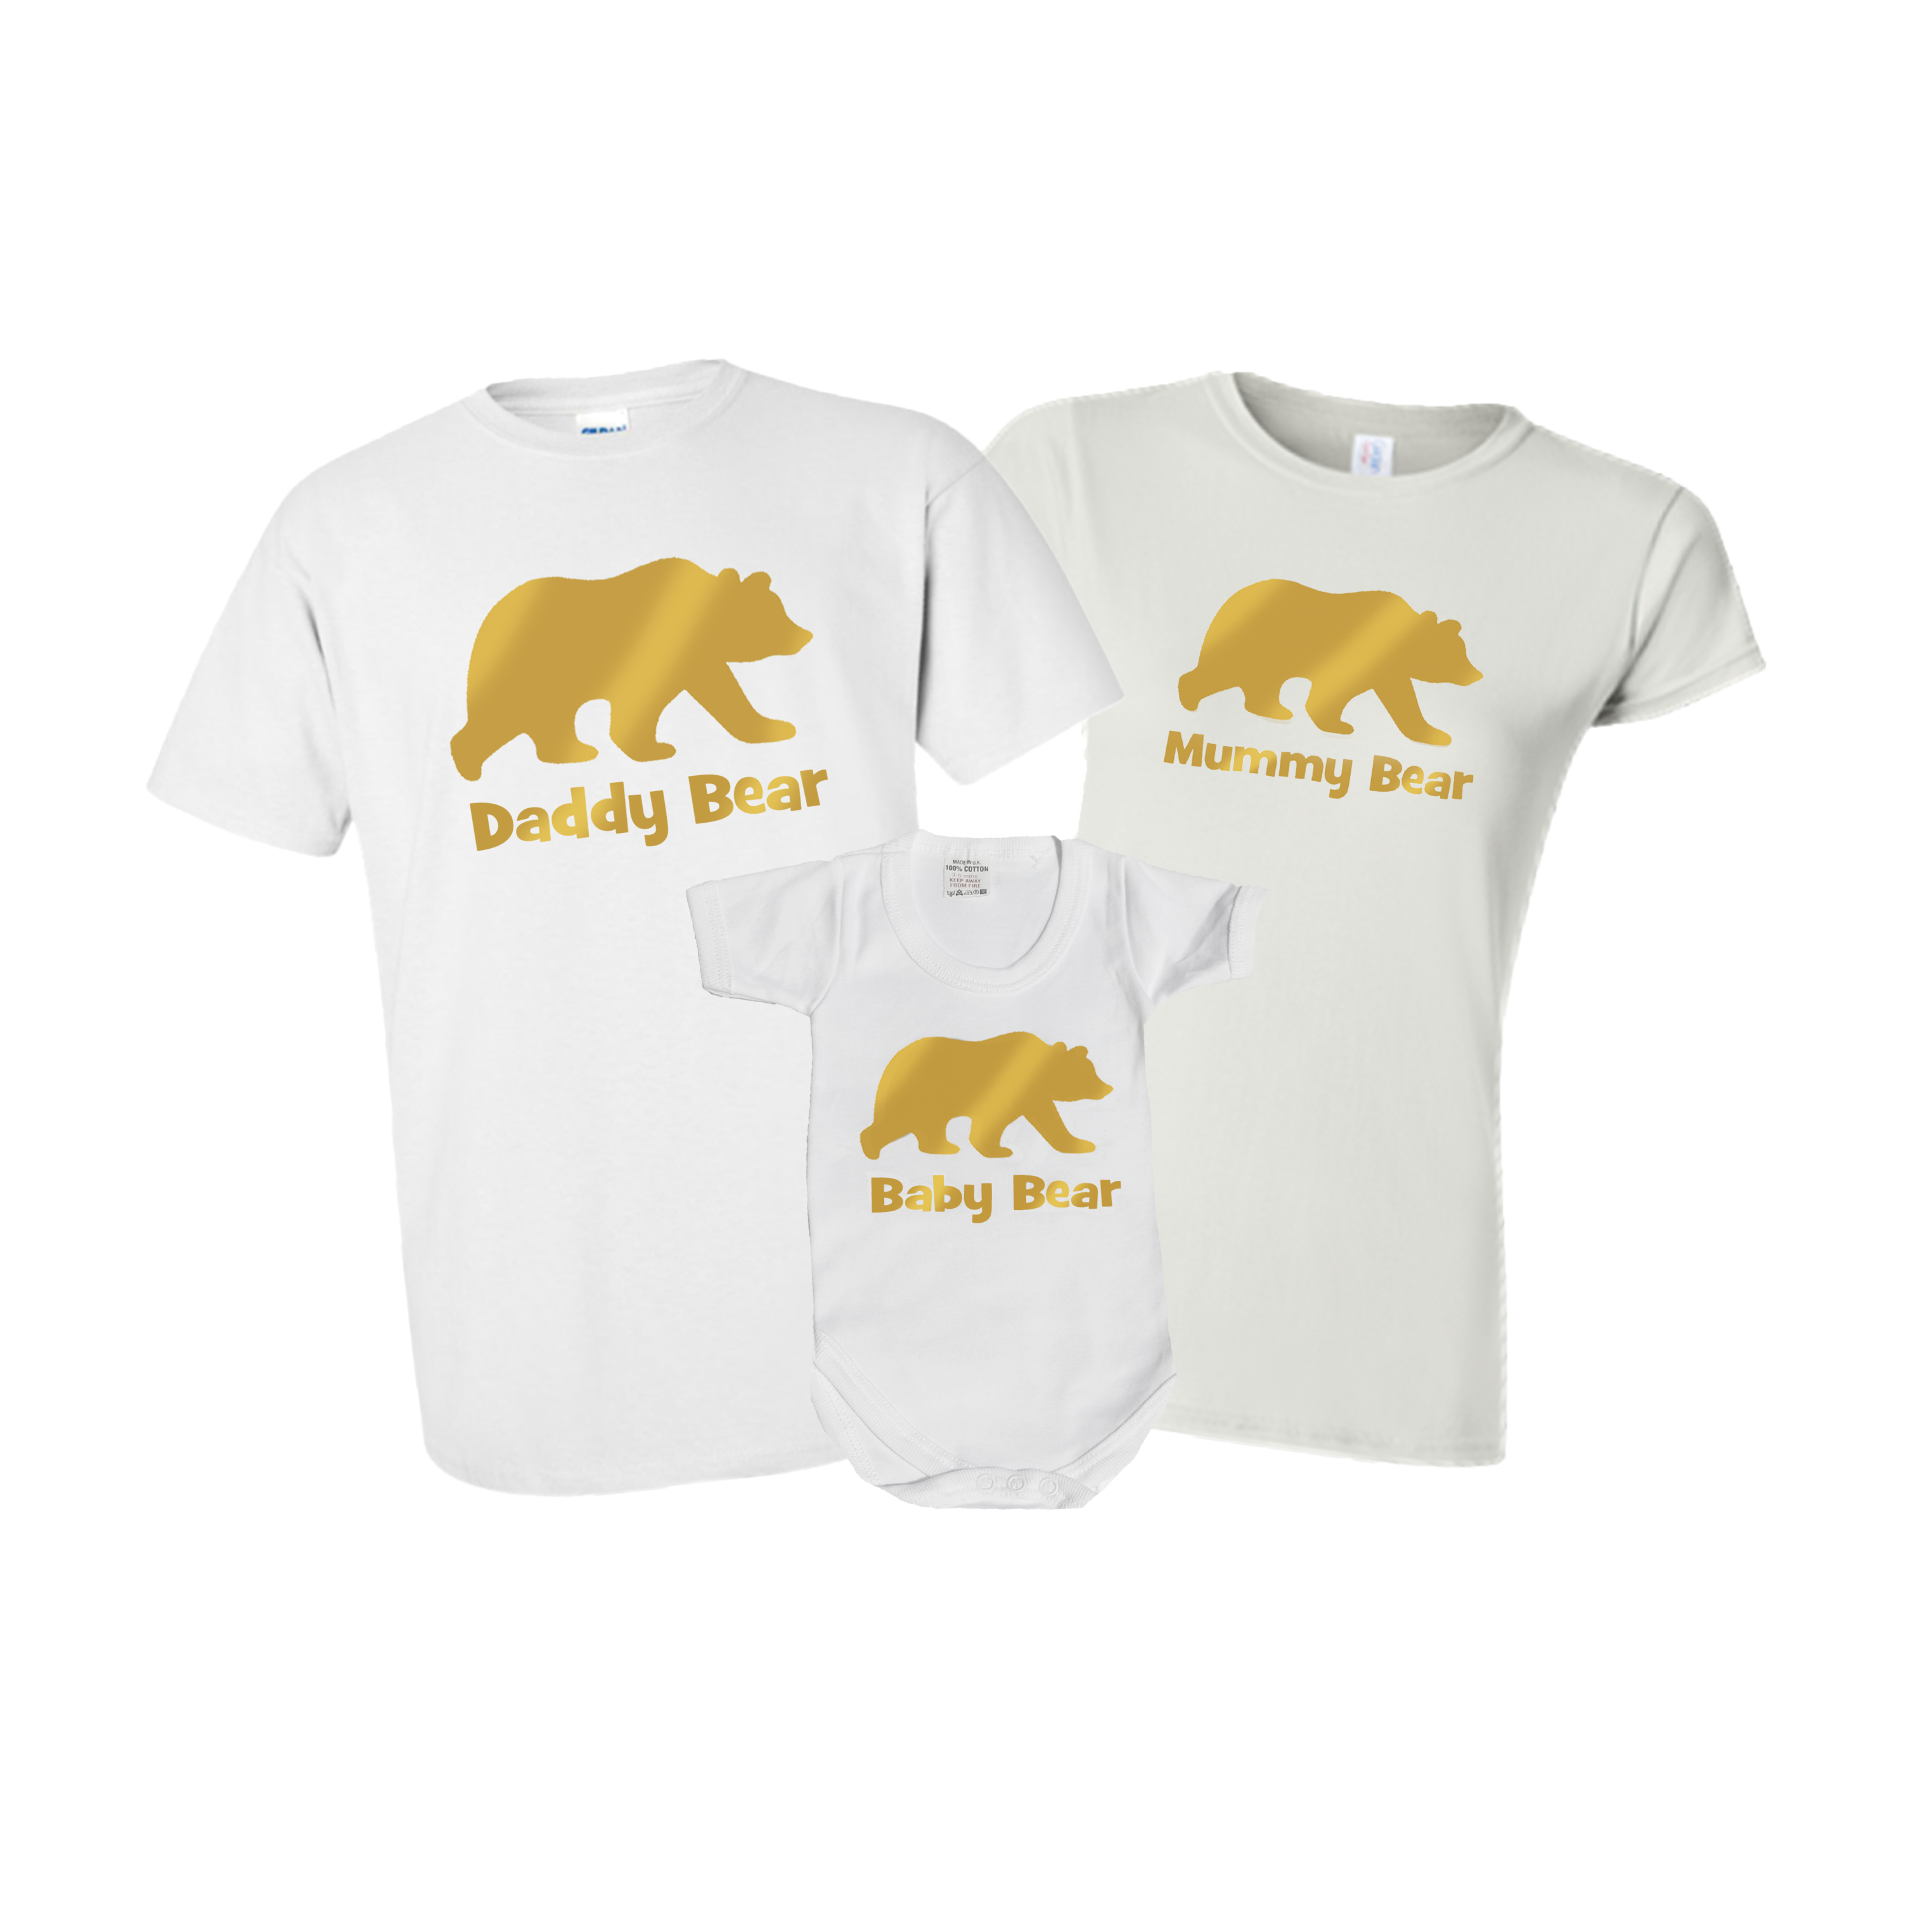 d41404c8 mummy daddy and baby bear tshirt matching set gift family goals cute  matching set ev designs